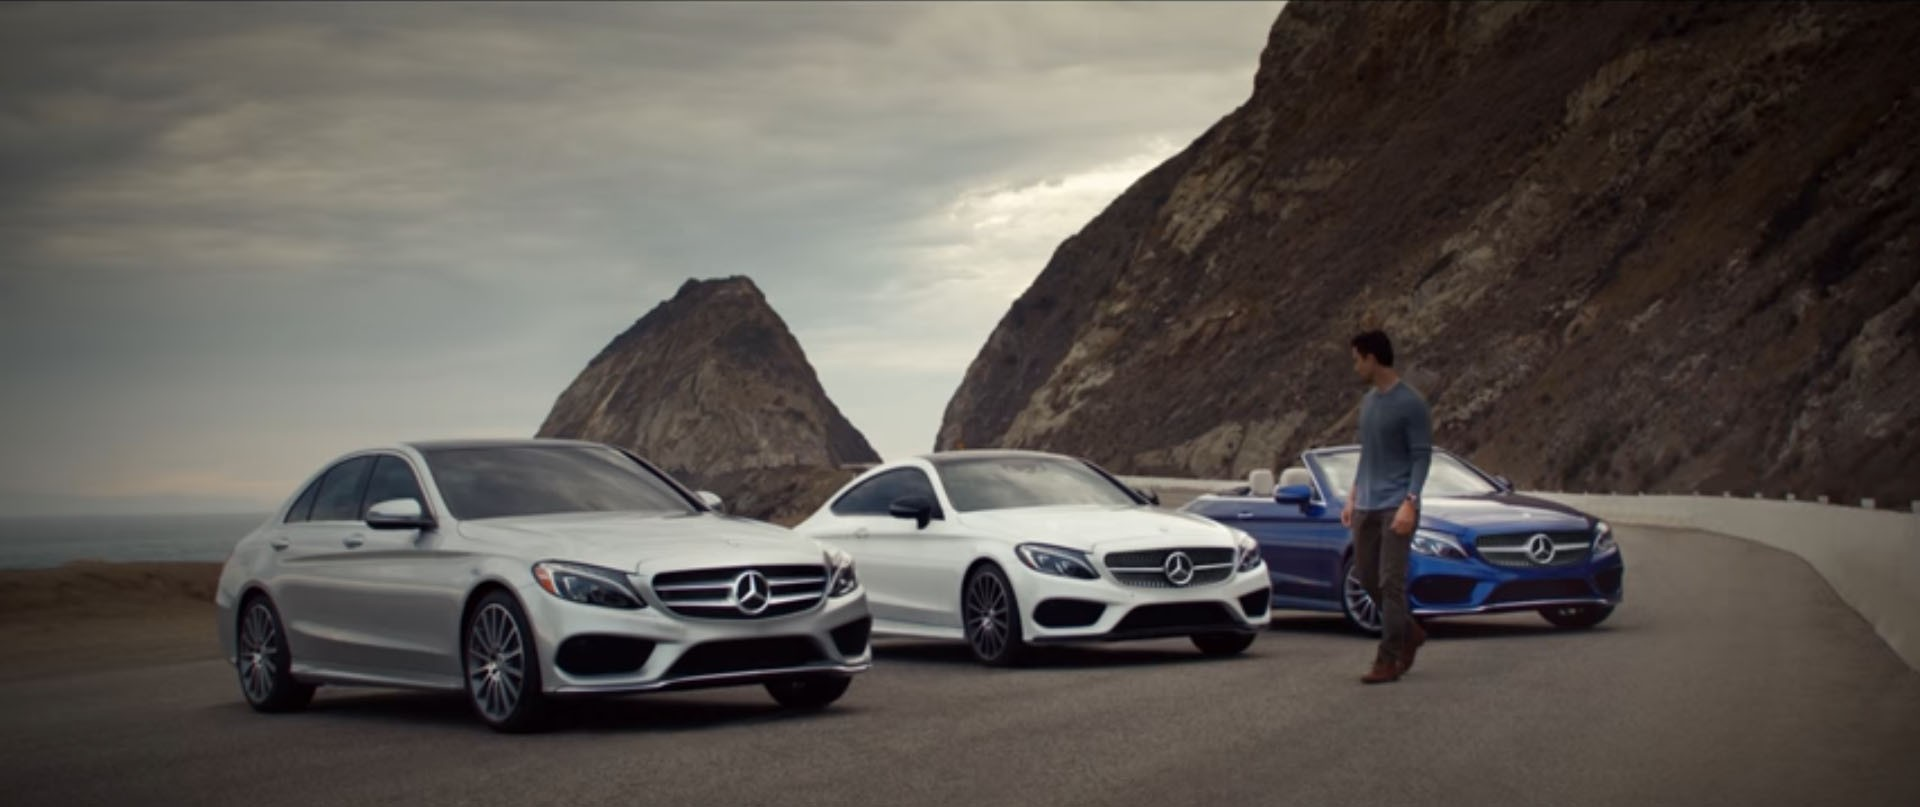 Mercedes benz c 63 amg coupe vs bmw m4 speedometer battle for New mercedes benz commercial